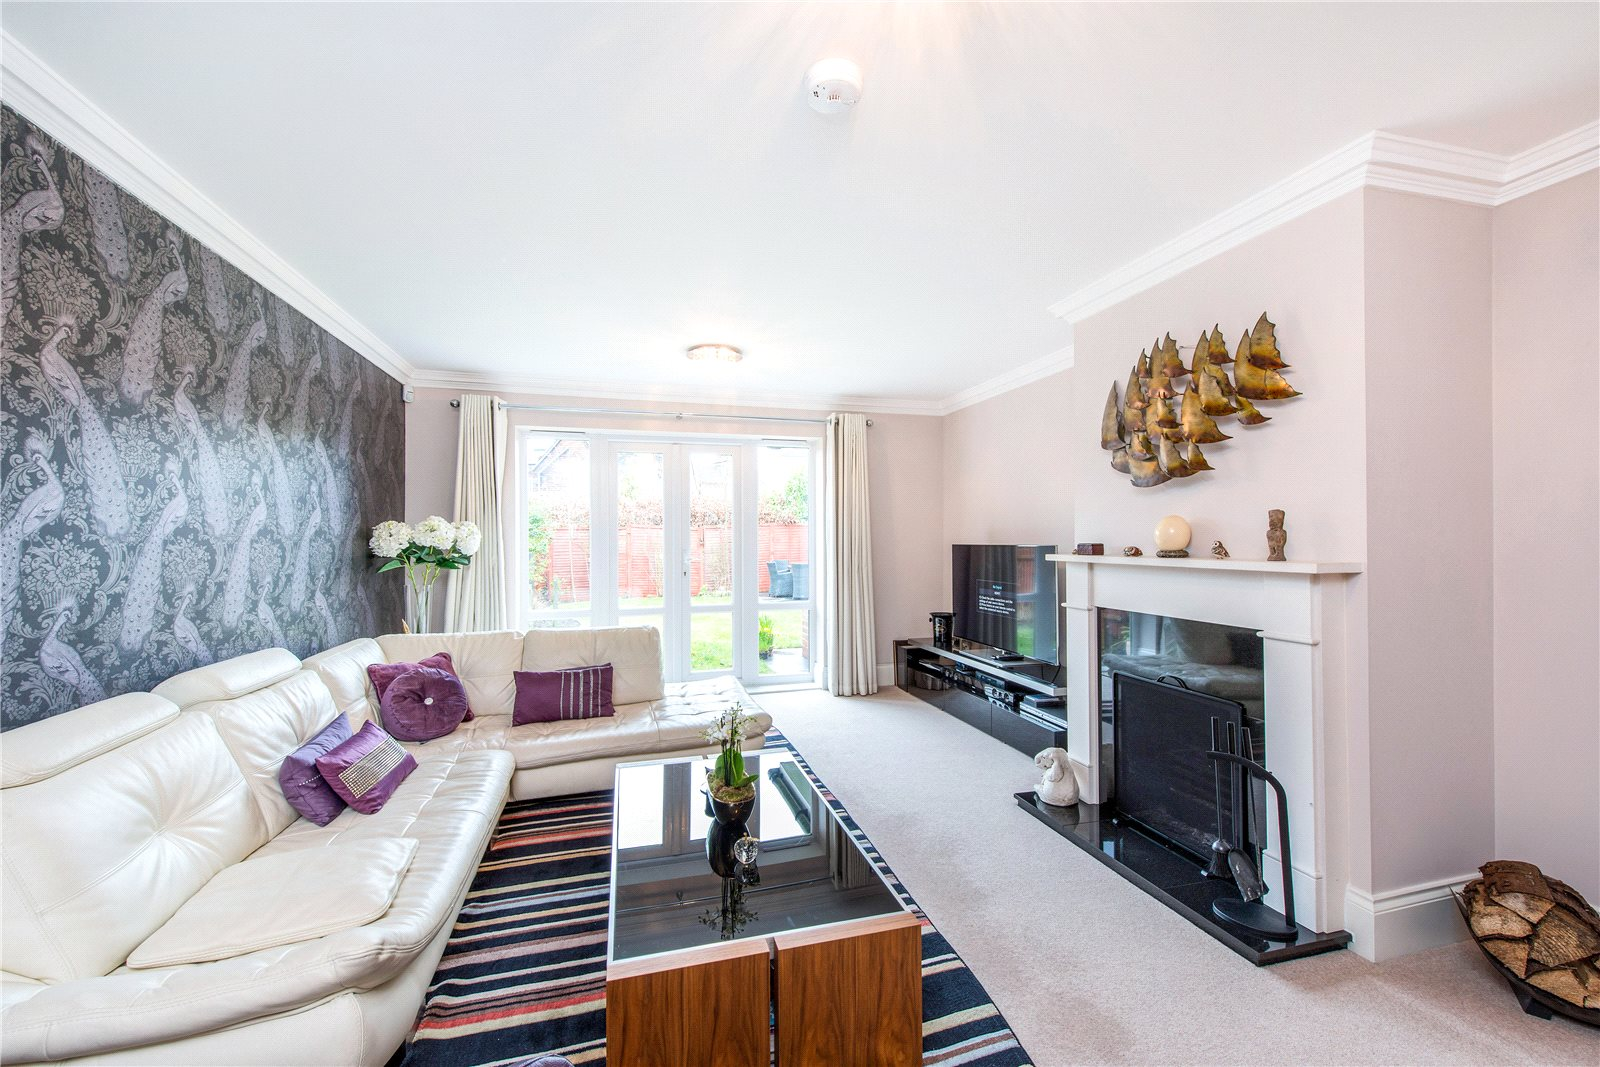 Additional photo for property listing at Ethorpe Crescent, Gerrards Cross, Buckinghamshire, SL9 Gerrards Cross, 英格兰